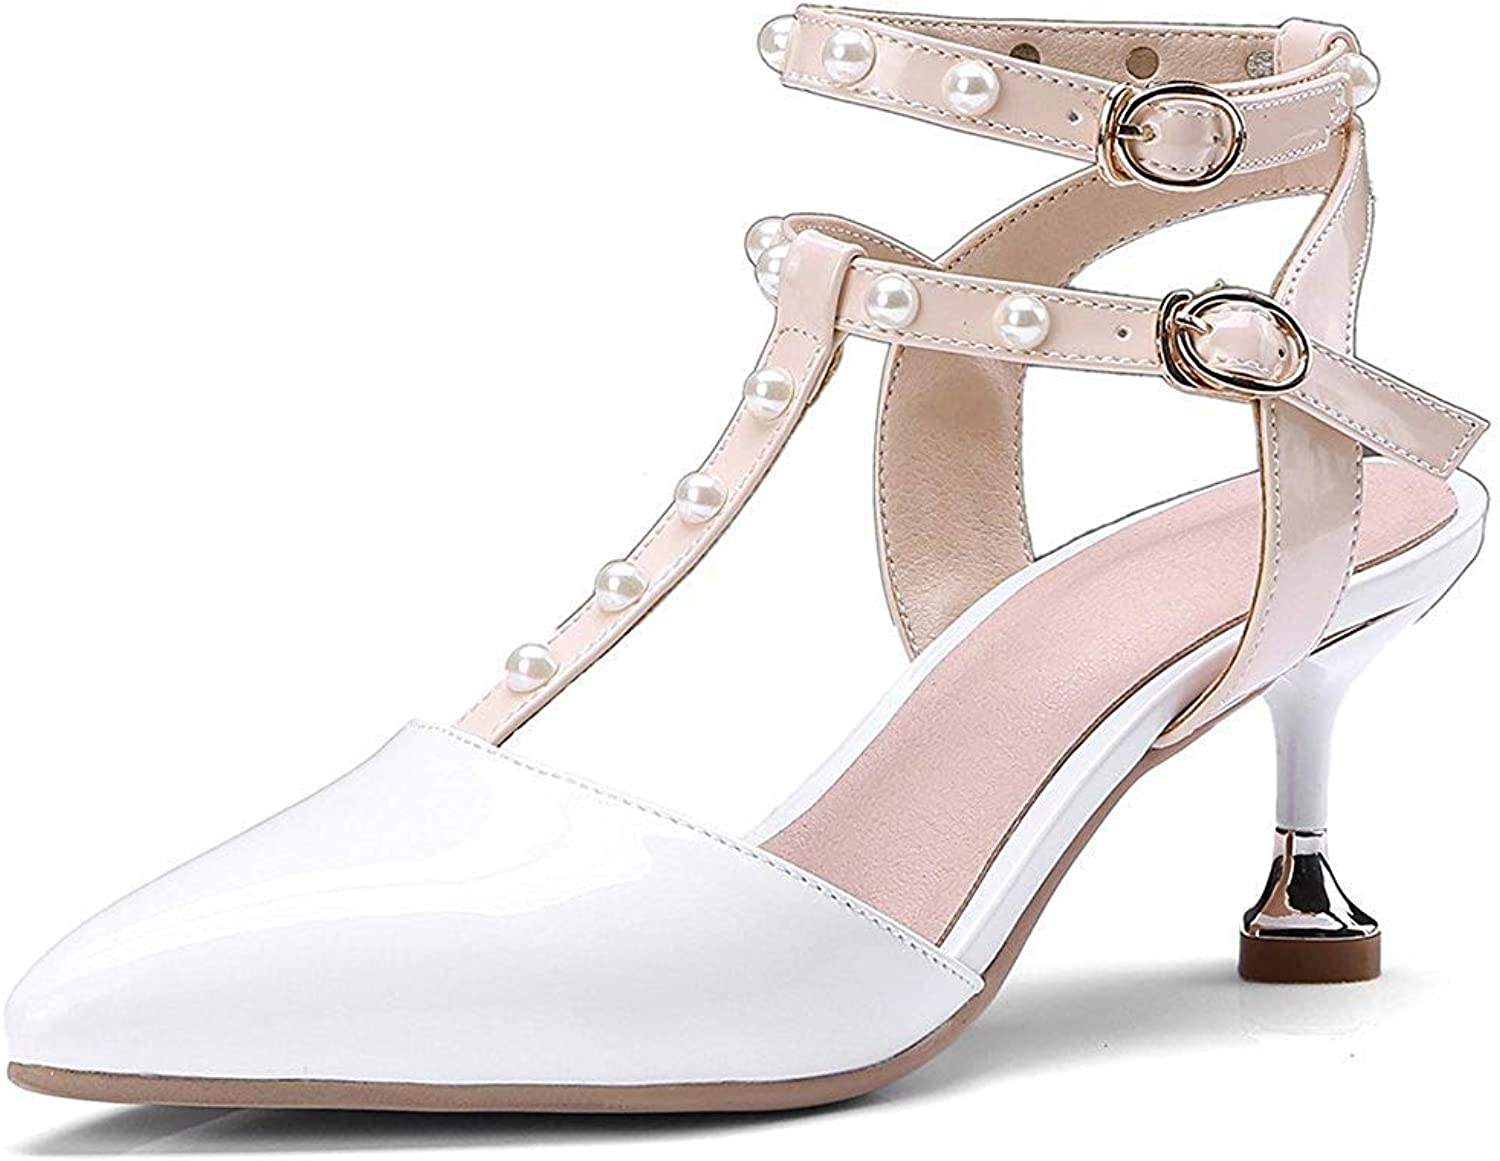 Gcanwea Women's Sexy Pointed Toe Beaded Buckle Ankle Strap Kitten Heel Sandals White 9 M US